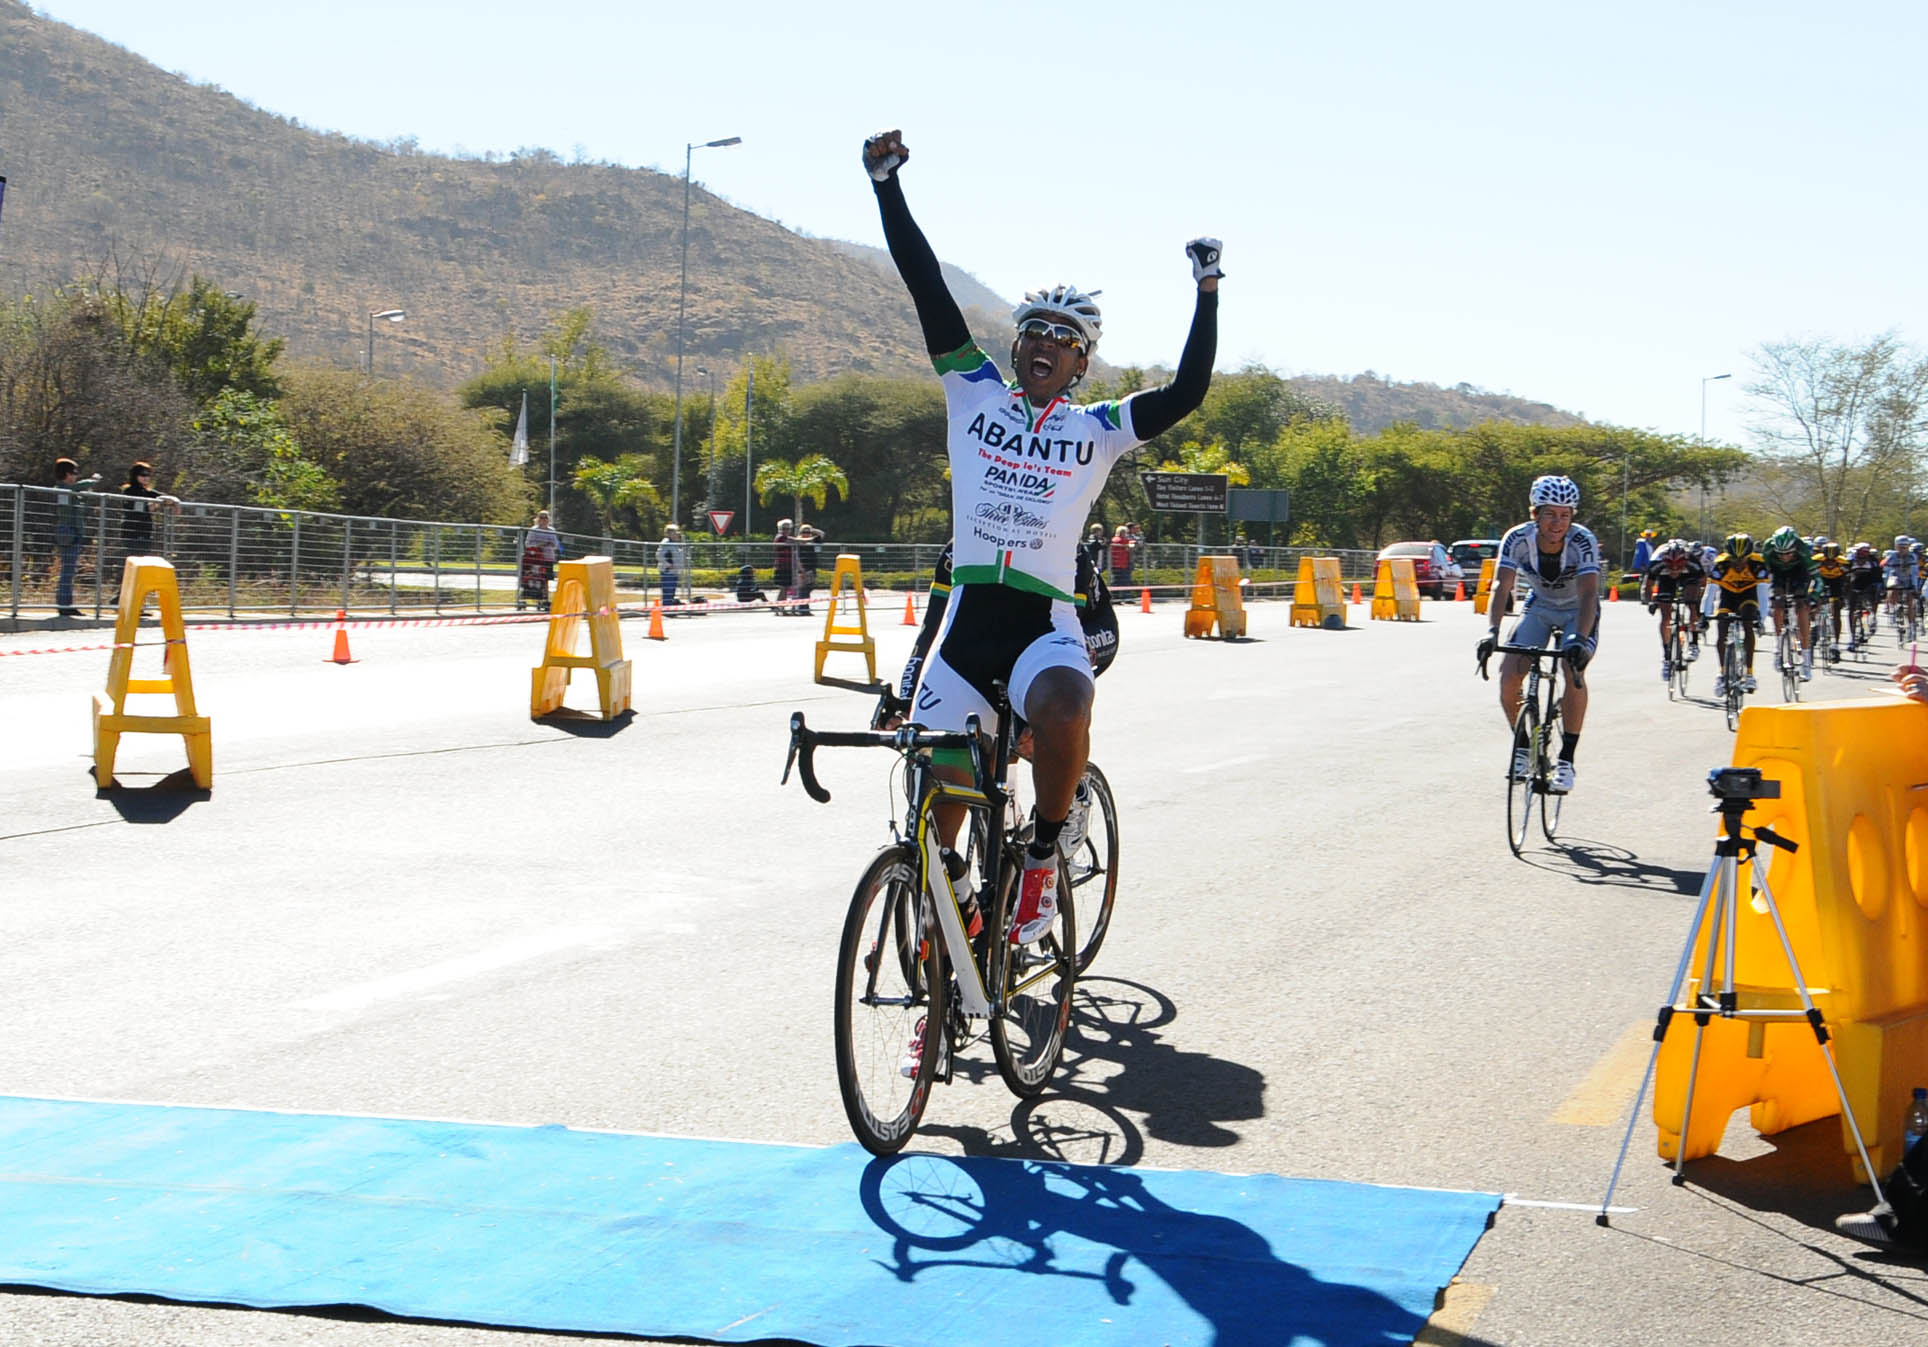 Team Abantu's Nolan Hoffman will be aiming to retain his title at the Powerade Bestmed Lost City Cycle Festival in the North-West Province on Saturday. Photo: Jetline Action Photo